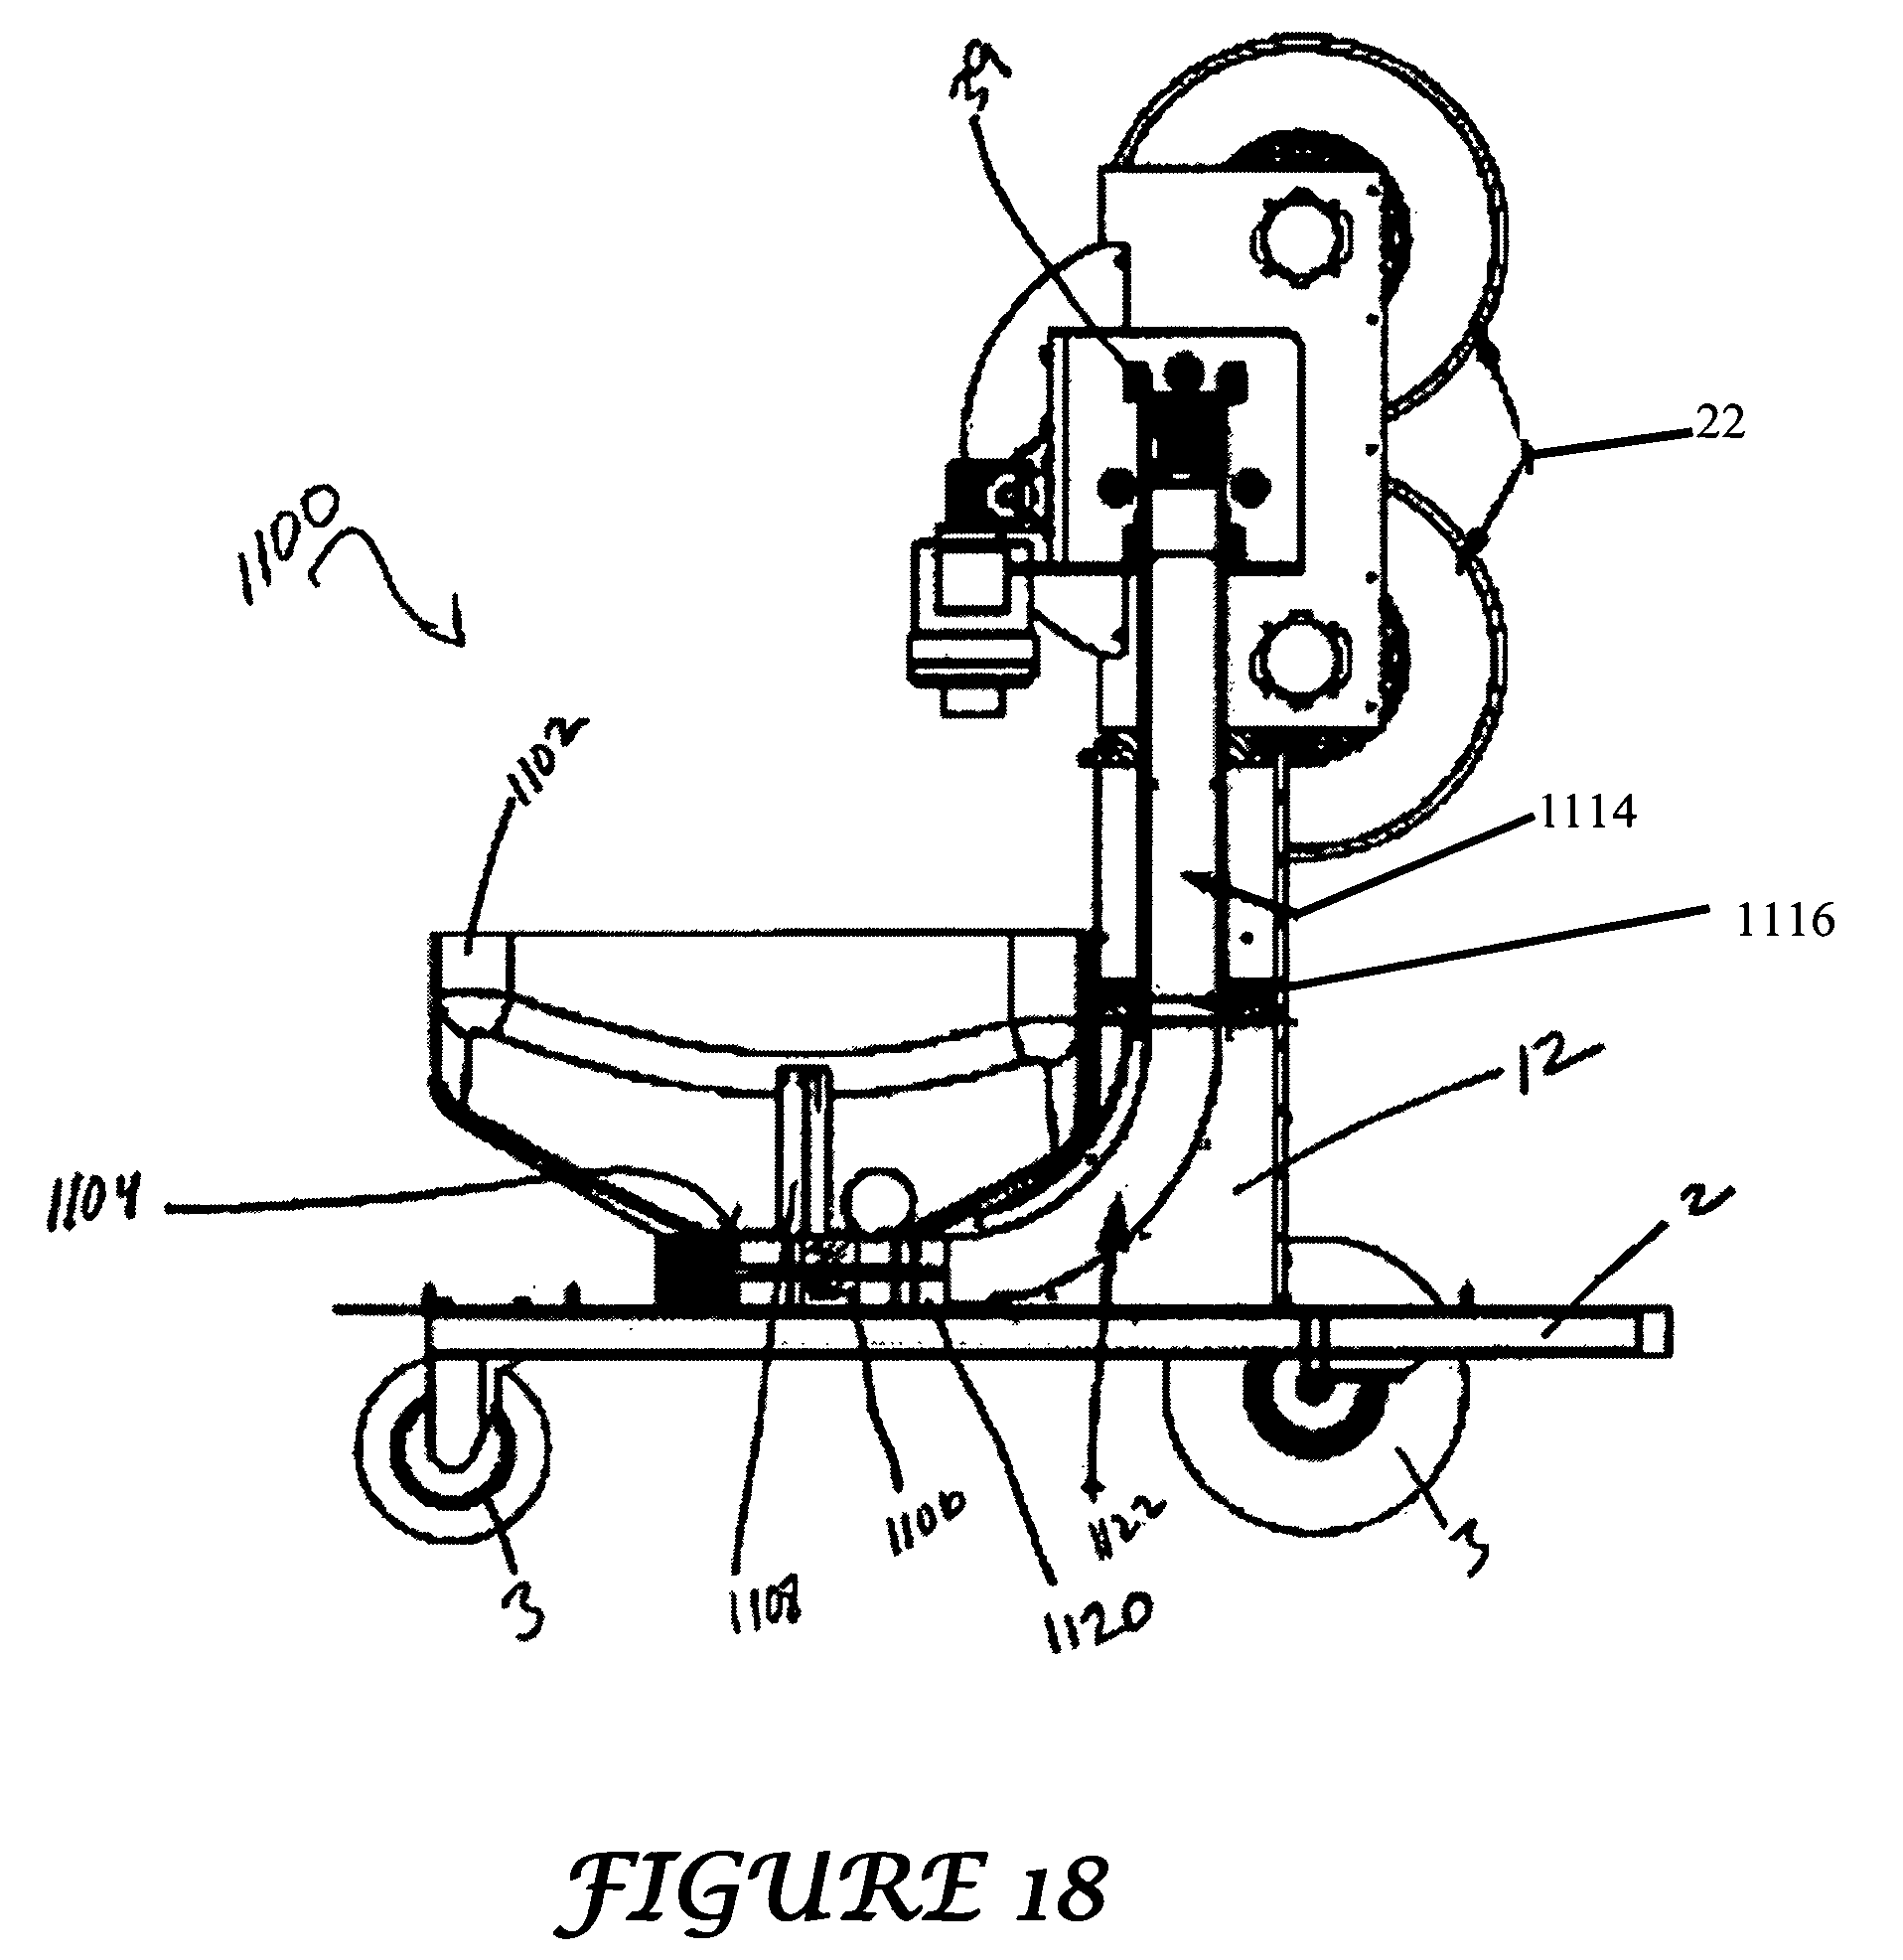 Brevet Us7766770 Programmable Ball Throwing Apparatus